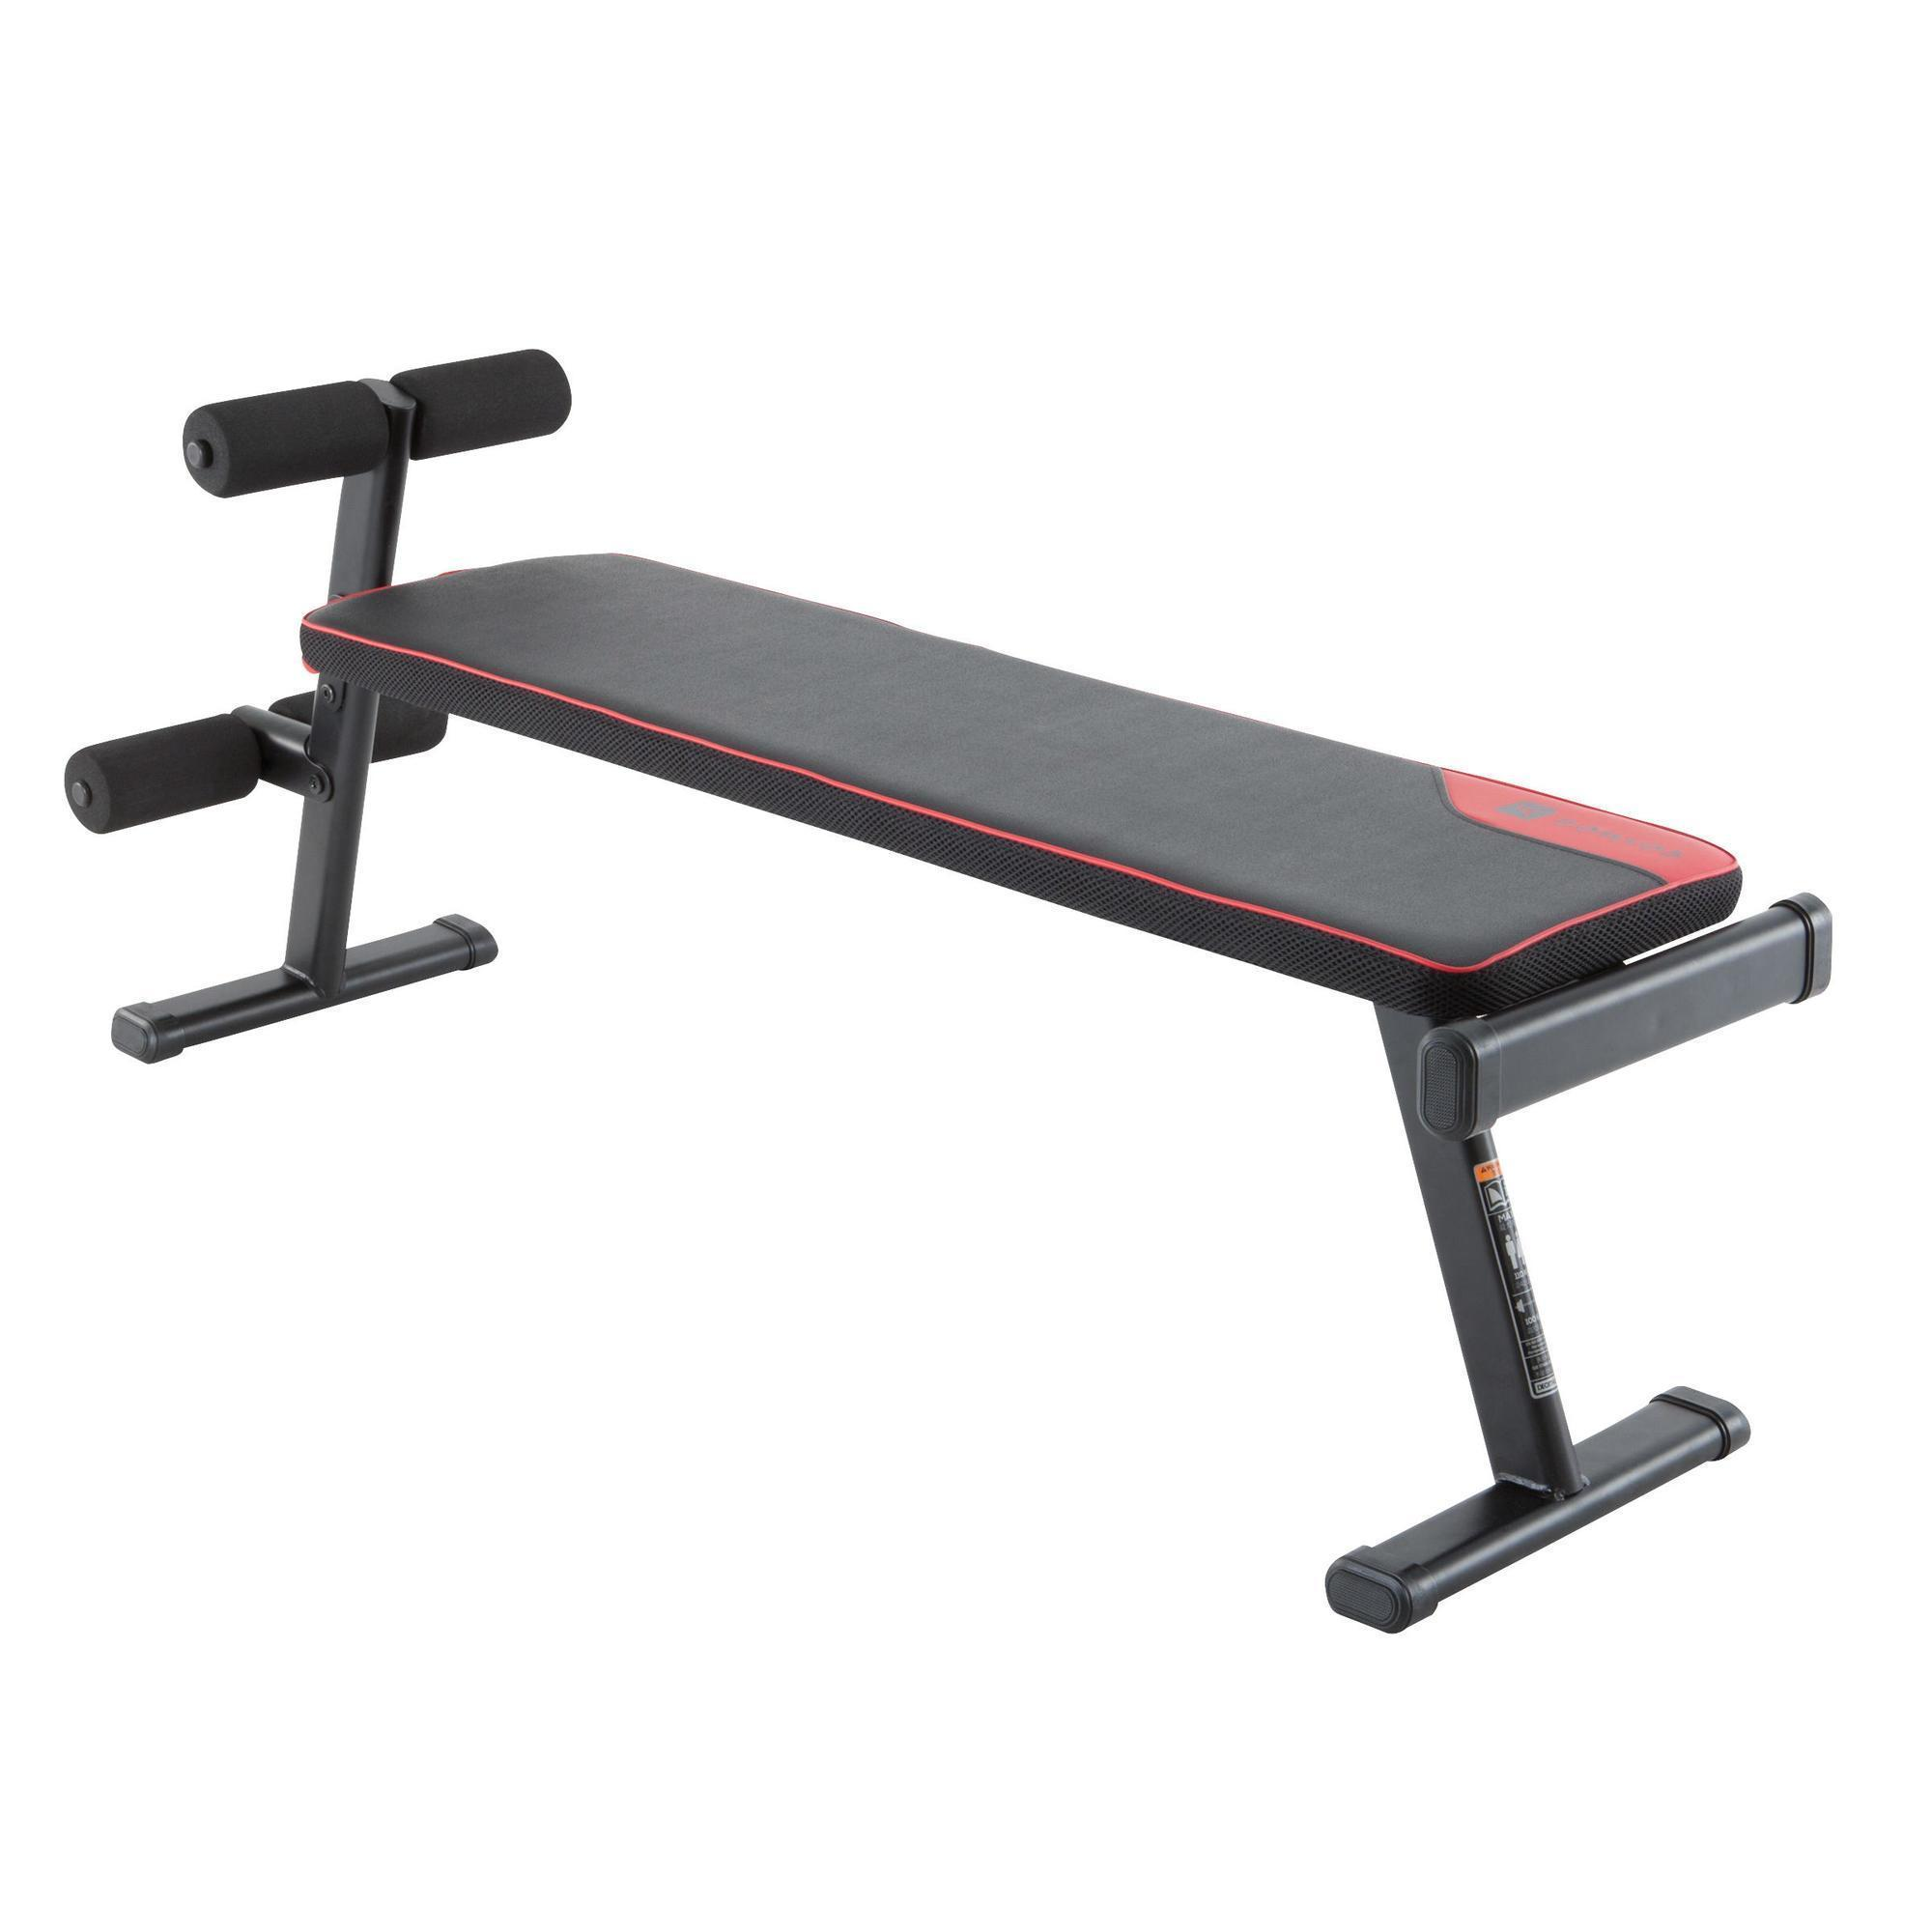 benches com weight ideas sale for of gym and golds bench comfortable weights best blackbirdphotographydesign about